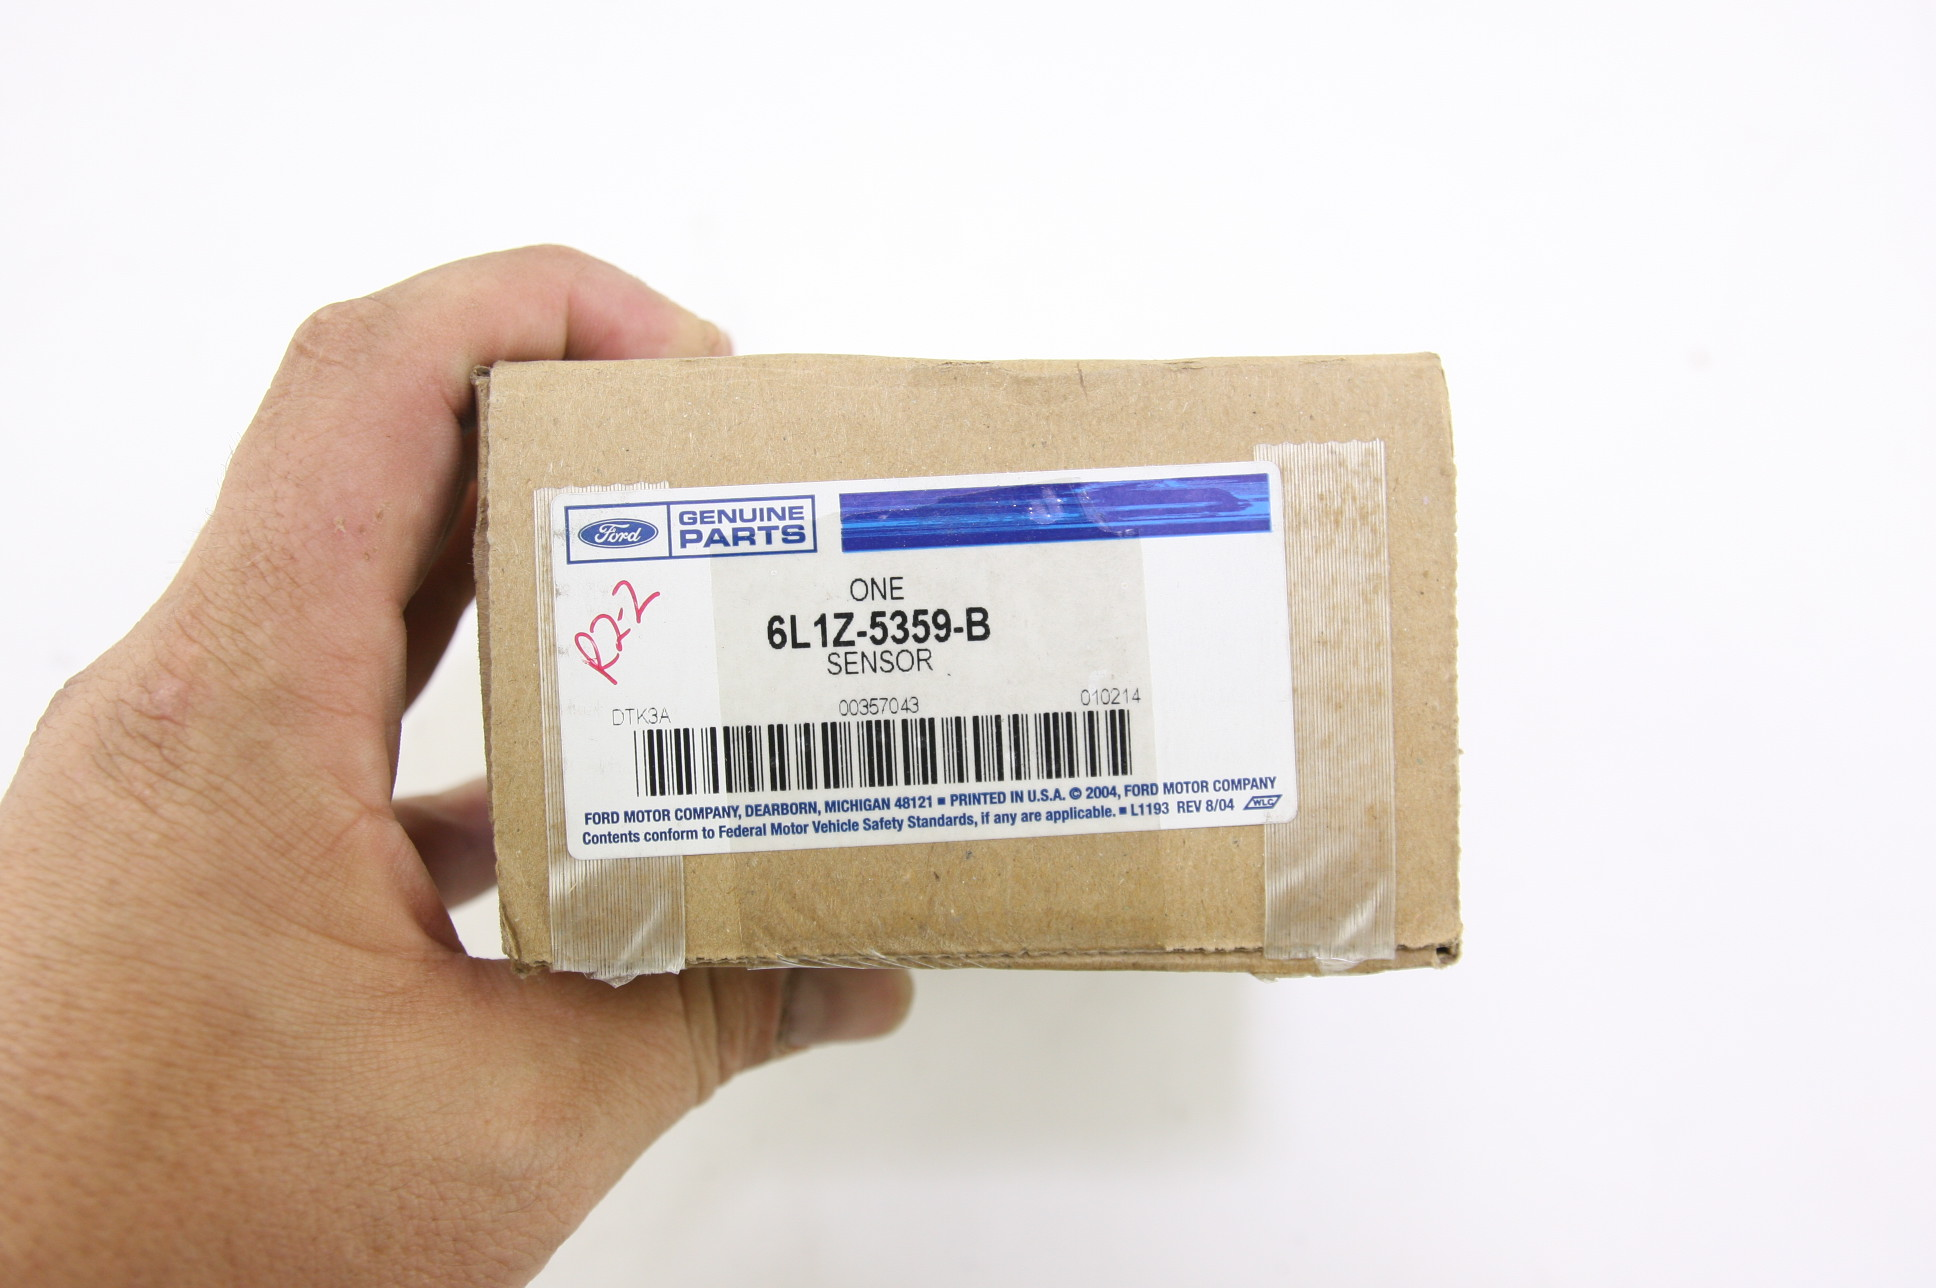 *** New OEM 6L1Z5359B Ford Lincoln Front Driver Side Air Ride Suspension Sensor - image 2